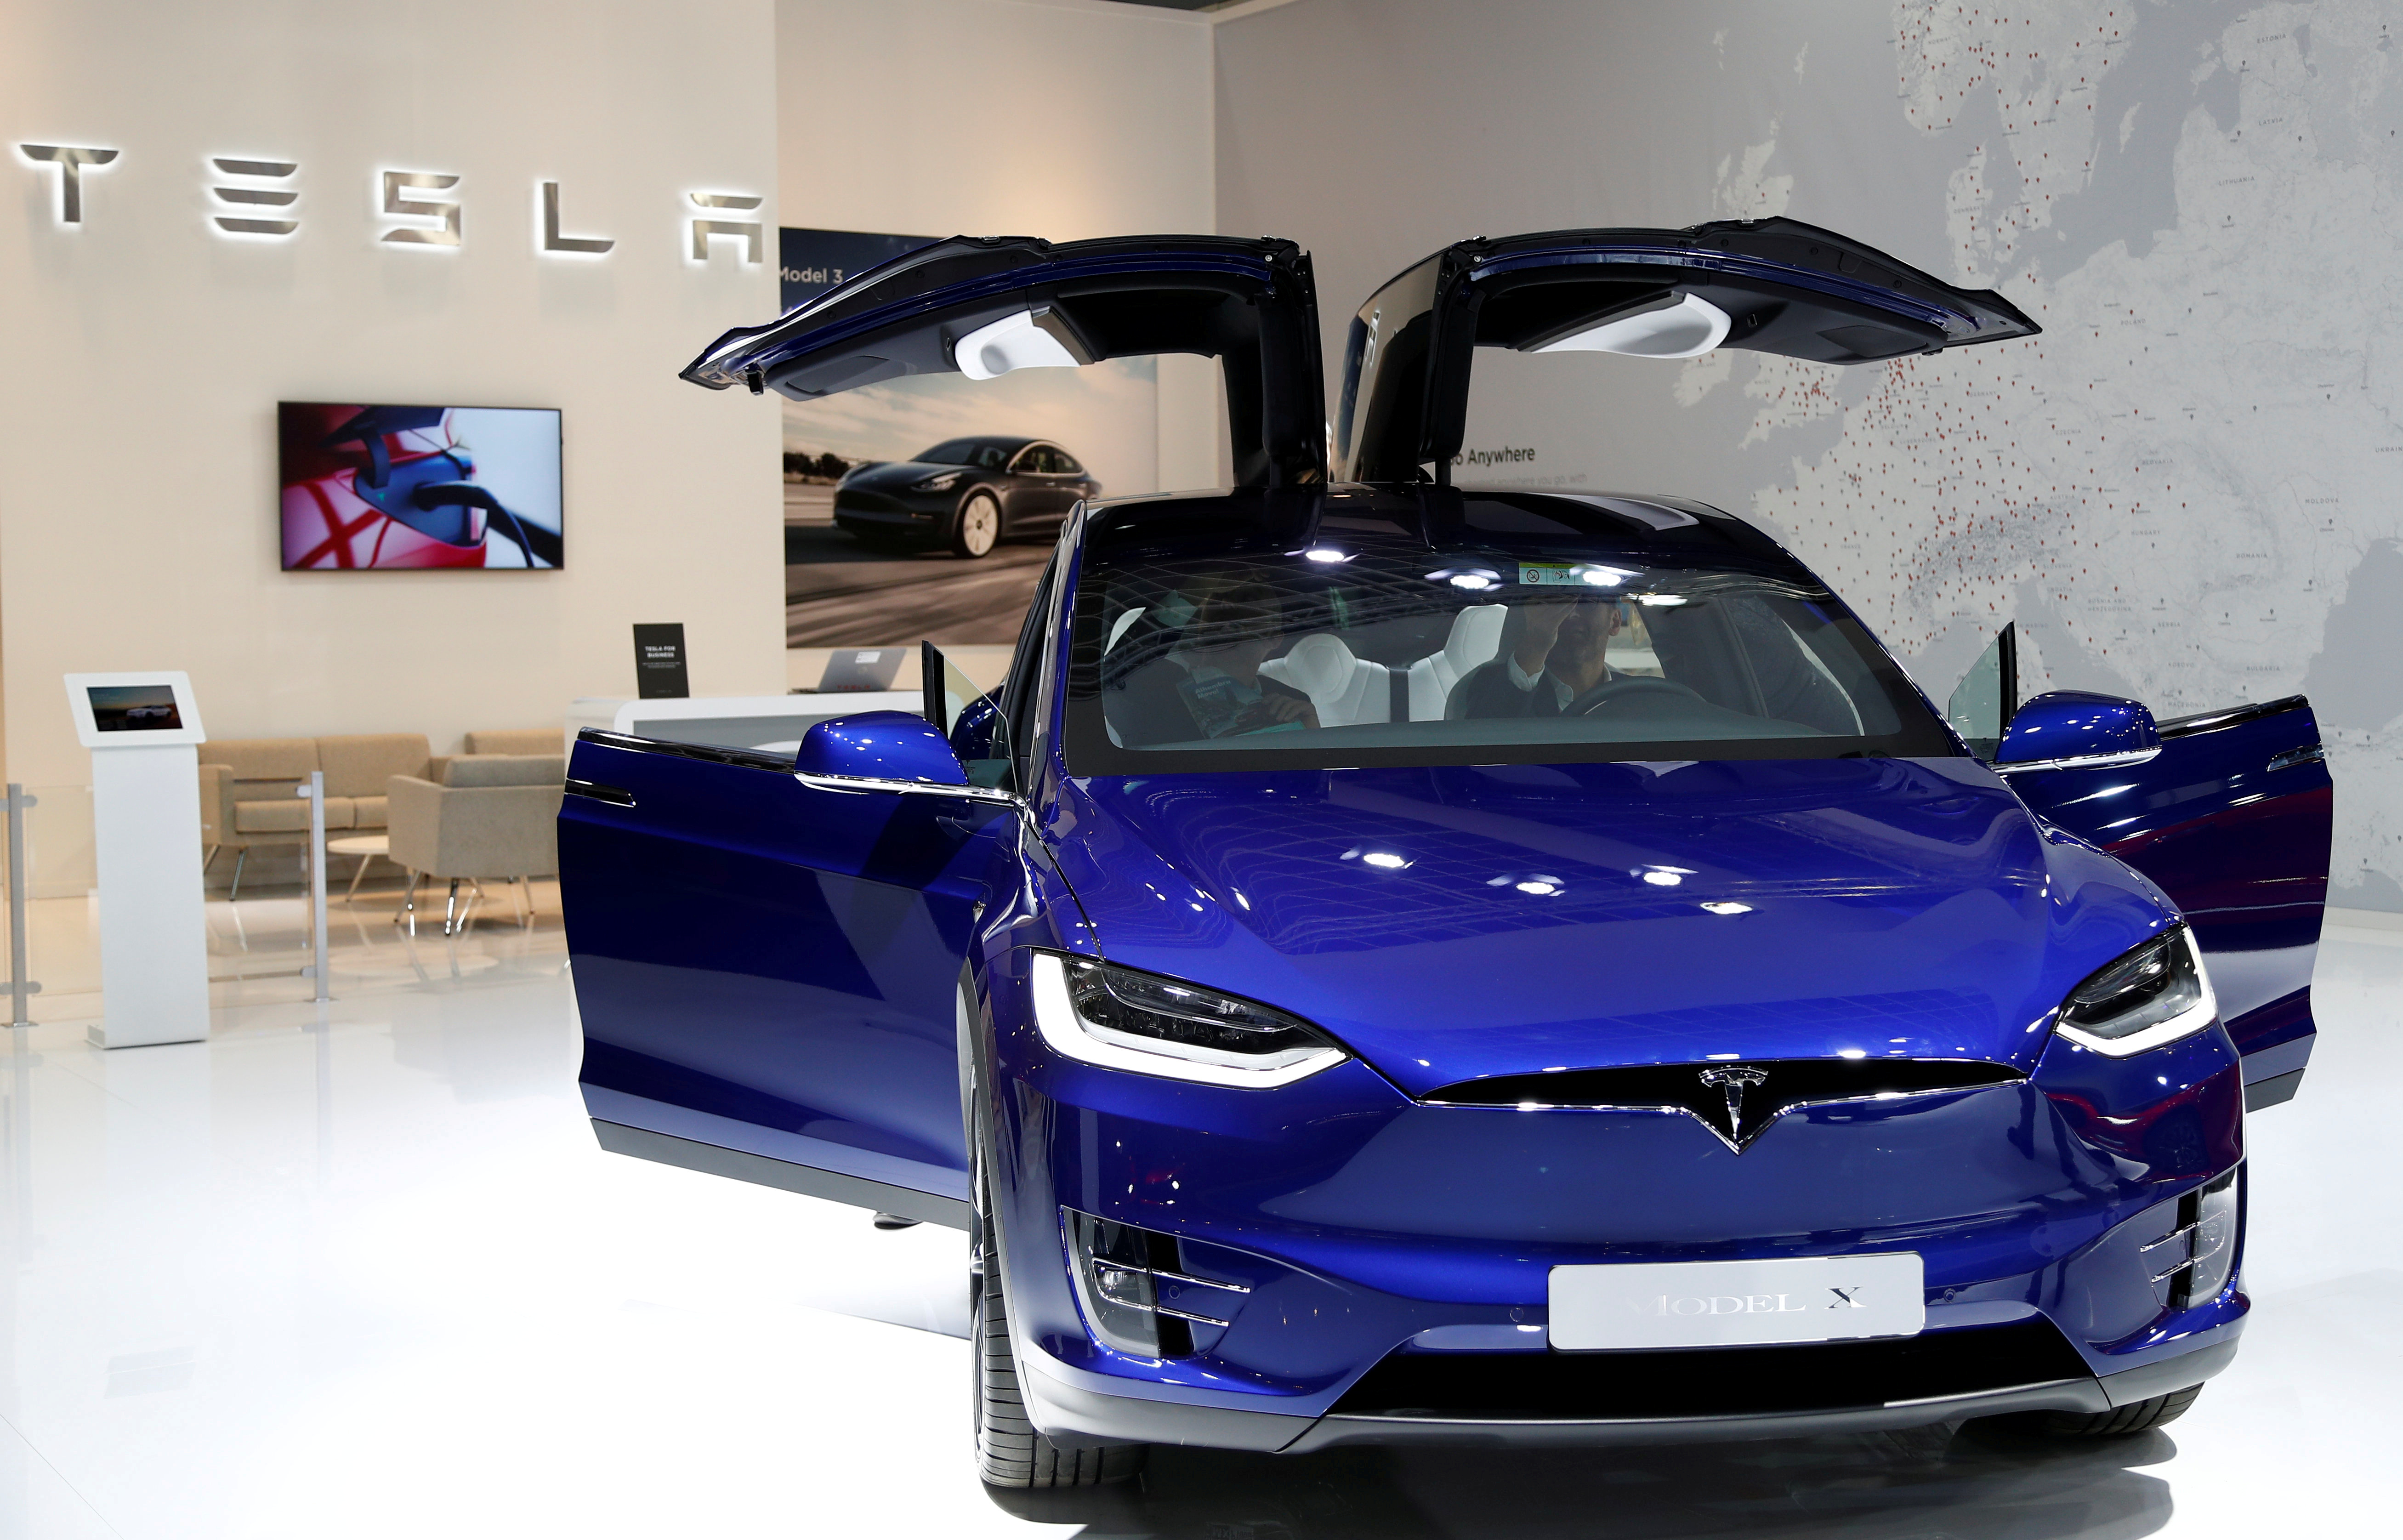 A Tesla Model X electric car is seen at the Brussels Motor Show, Belgium, January 9, 2020. REUTERS/Francois Lenoir/File Photo